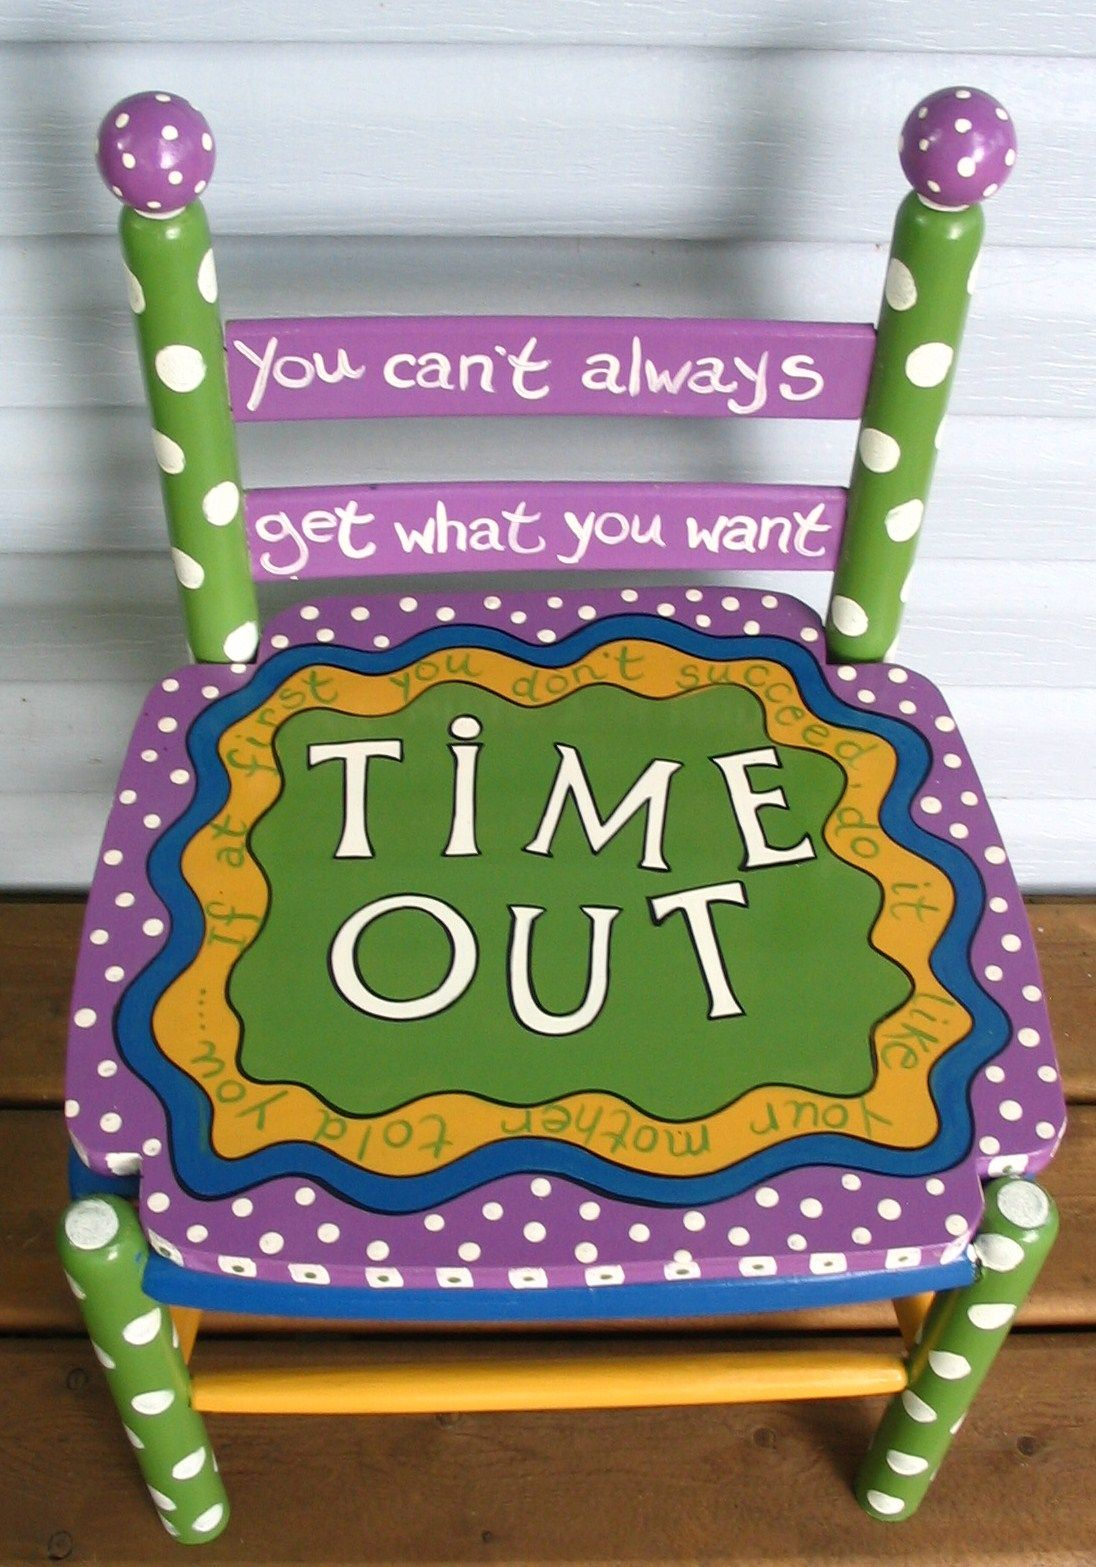 Kids Time Out Chair Walmart Beach Quotyou Can 39t Always Get What Your Want Quot Love It